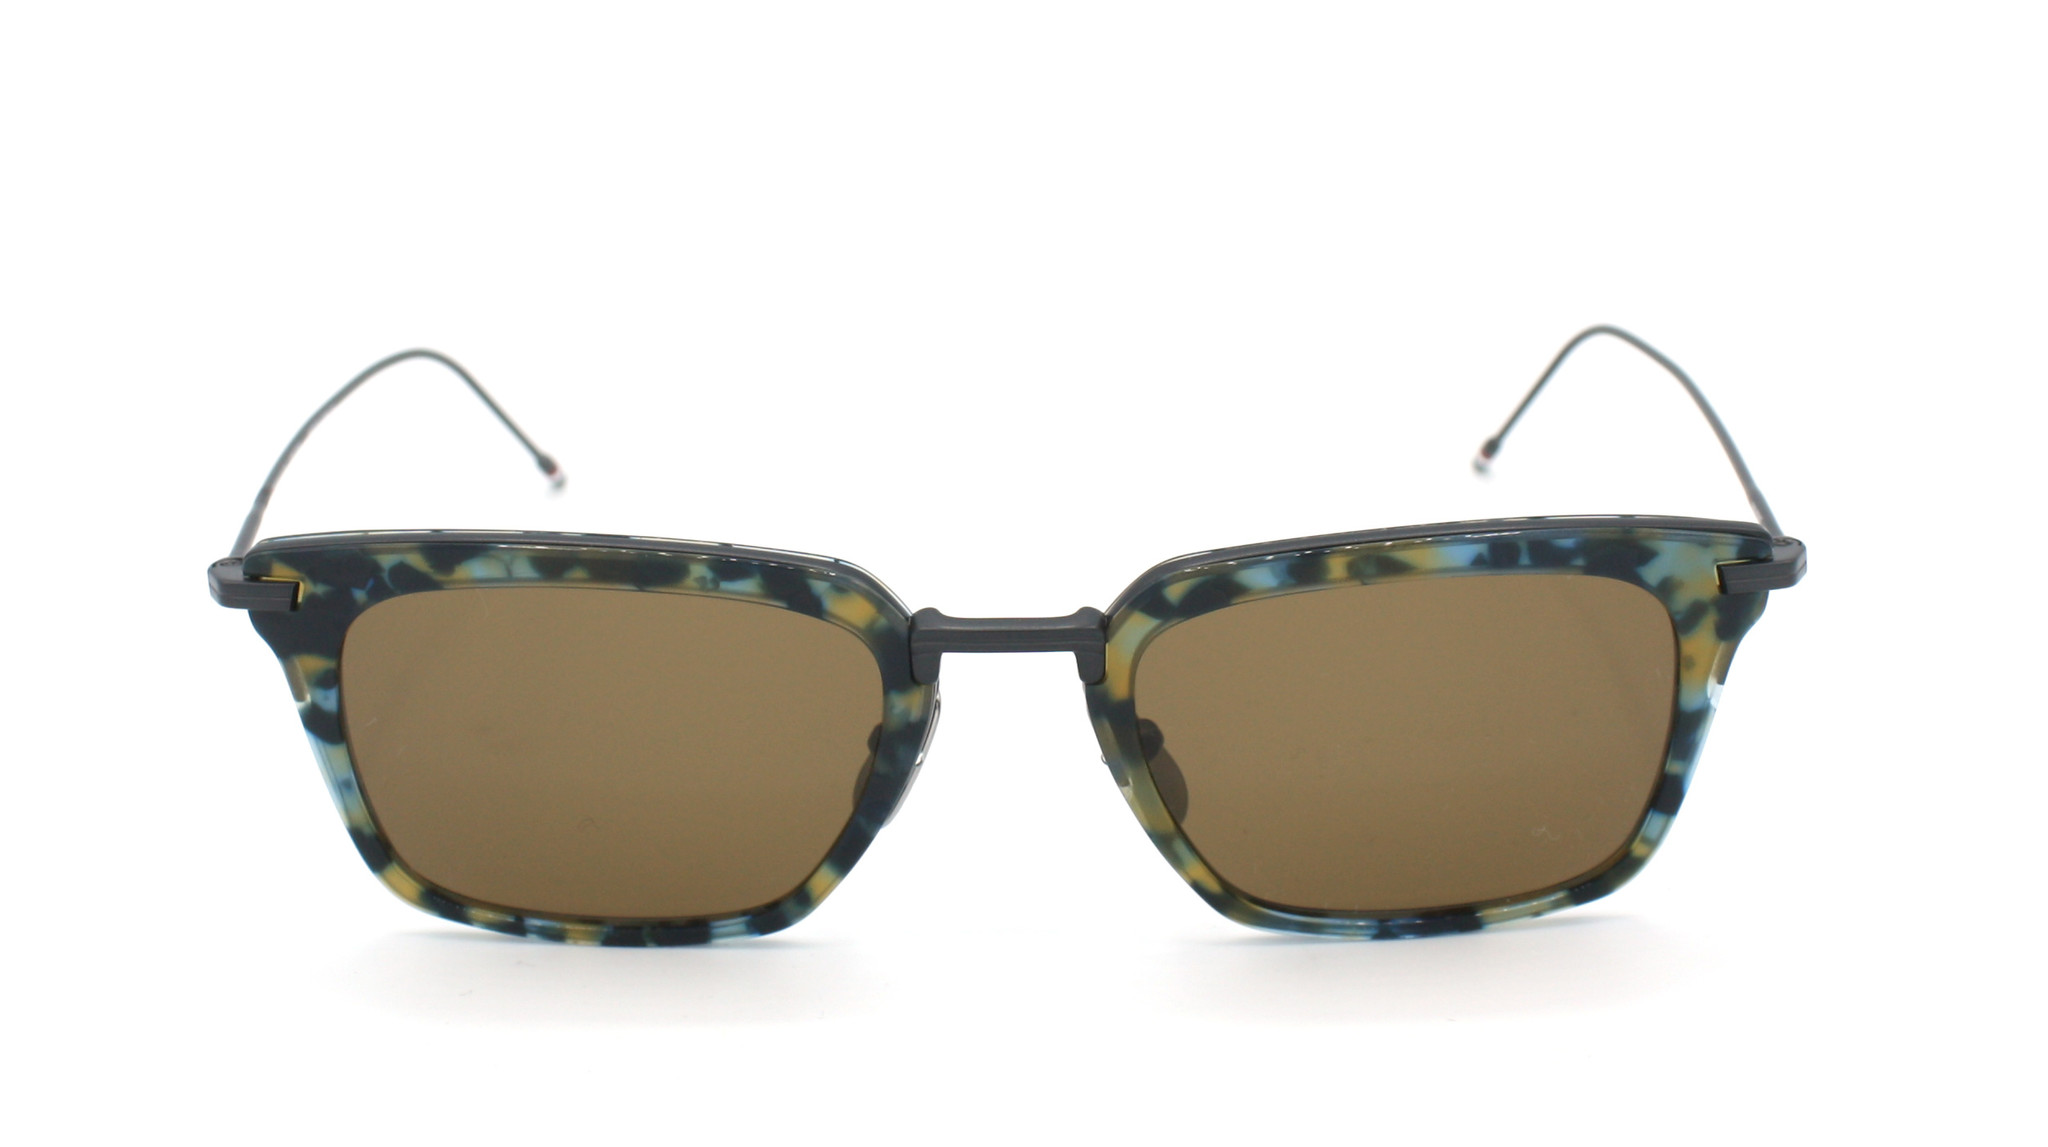 Thom Browne - TBS916 - NVY-BLK-1